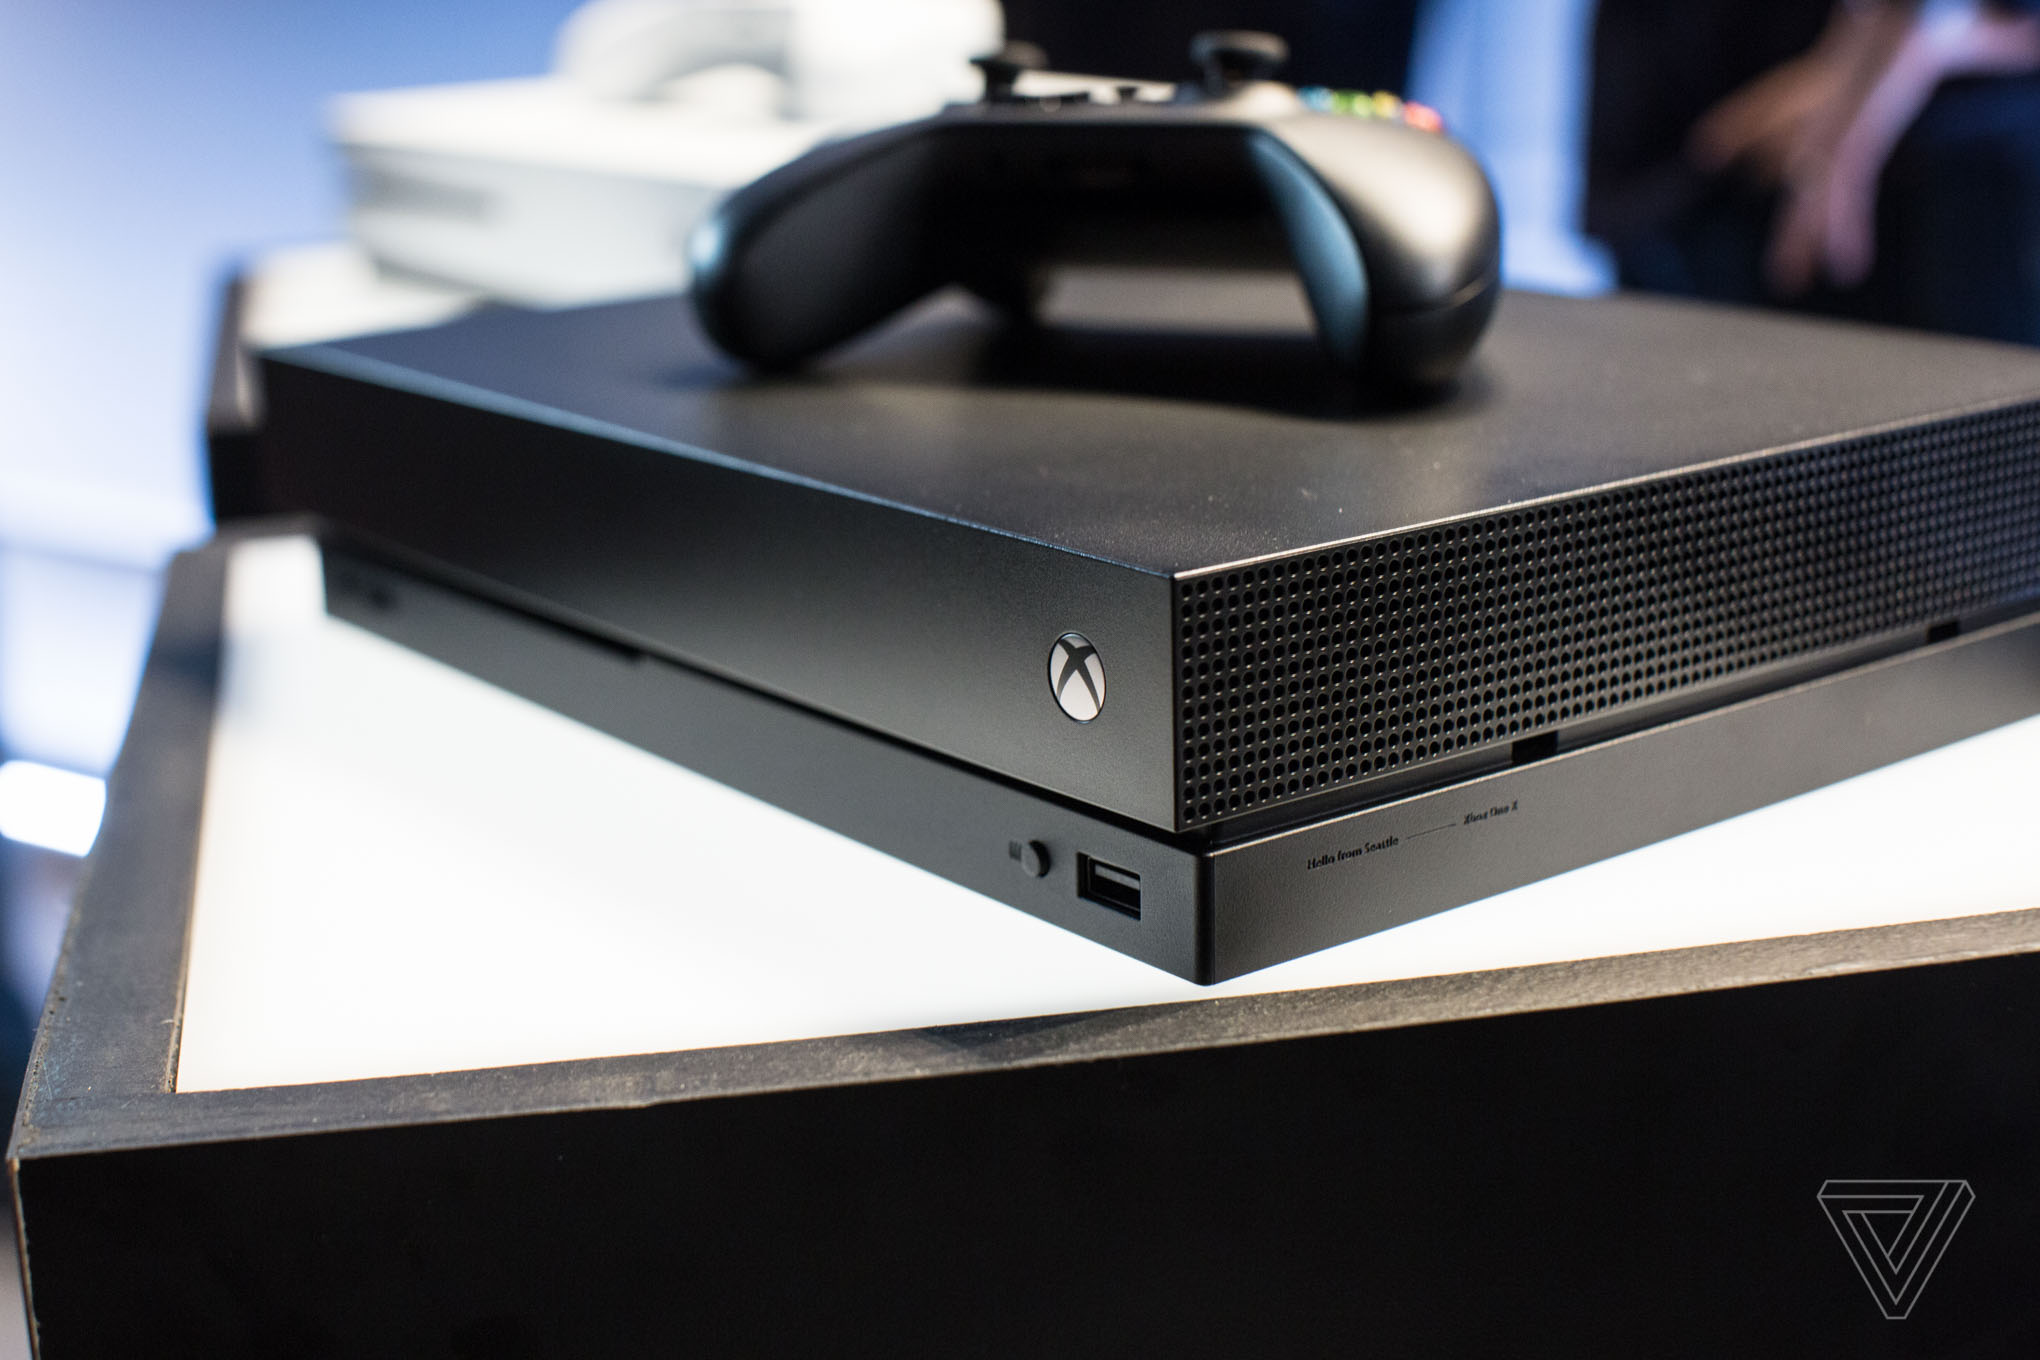 bf75ac4ec7a Microsoft can't explain why its 4K is $100 better than Sony's - The ...